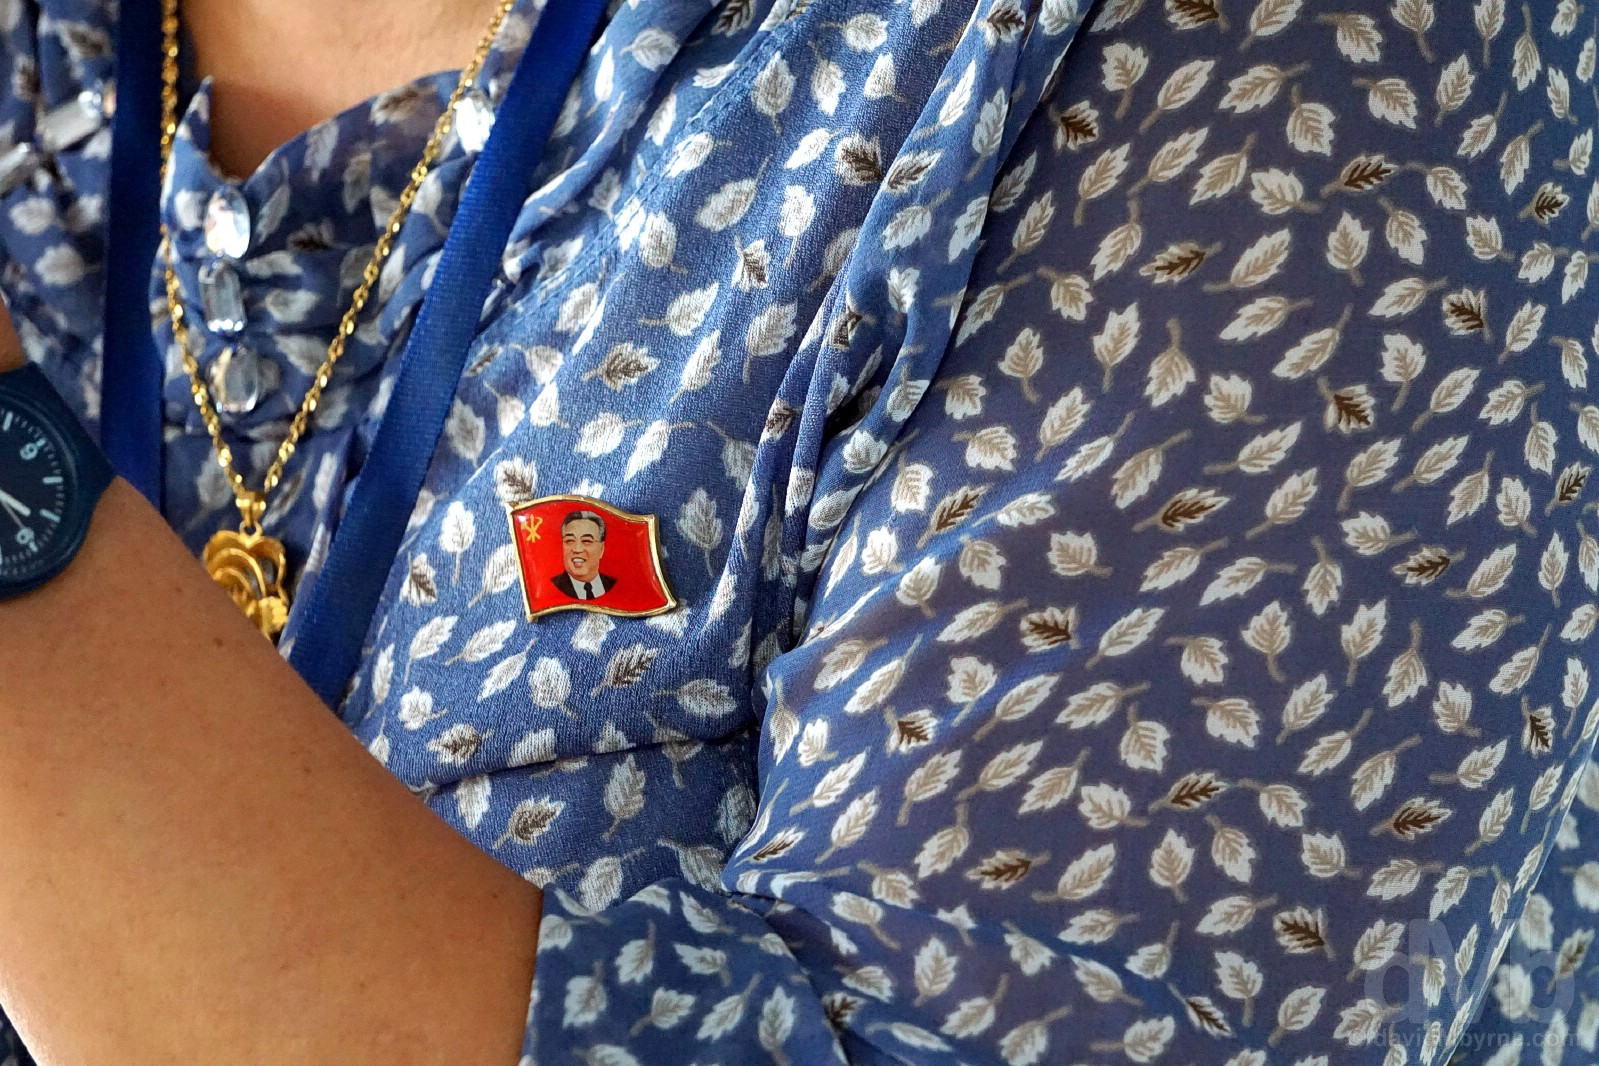 Kim Il-sung badge 'close to the heart'. Pyongyang, North Korea. August 15, 2017.